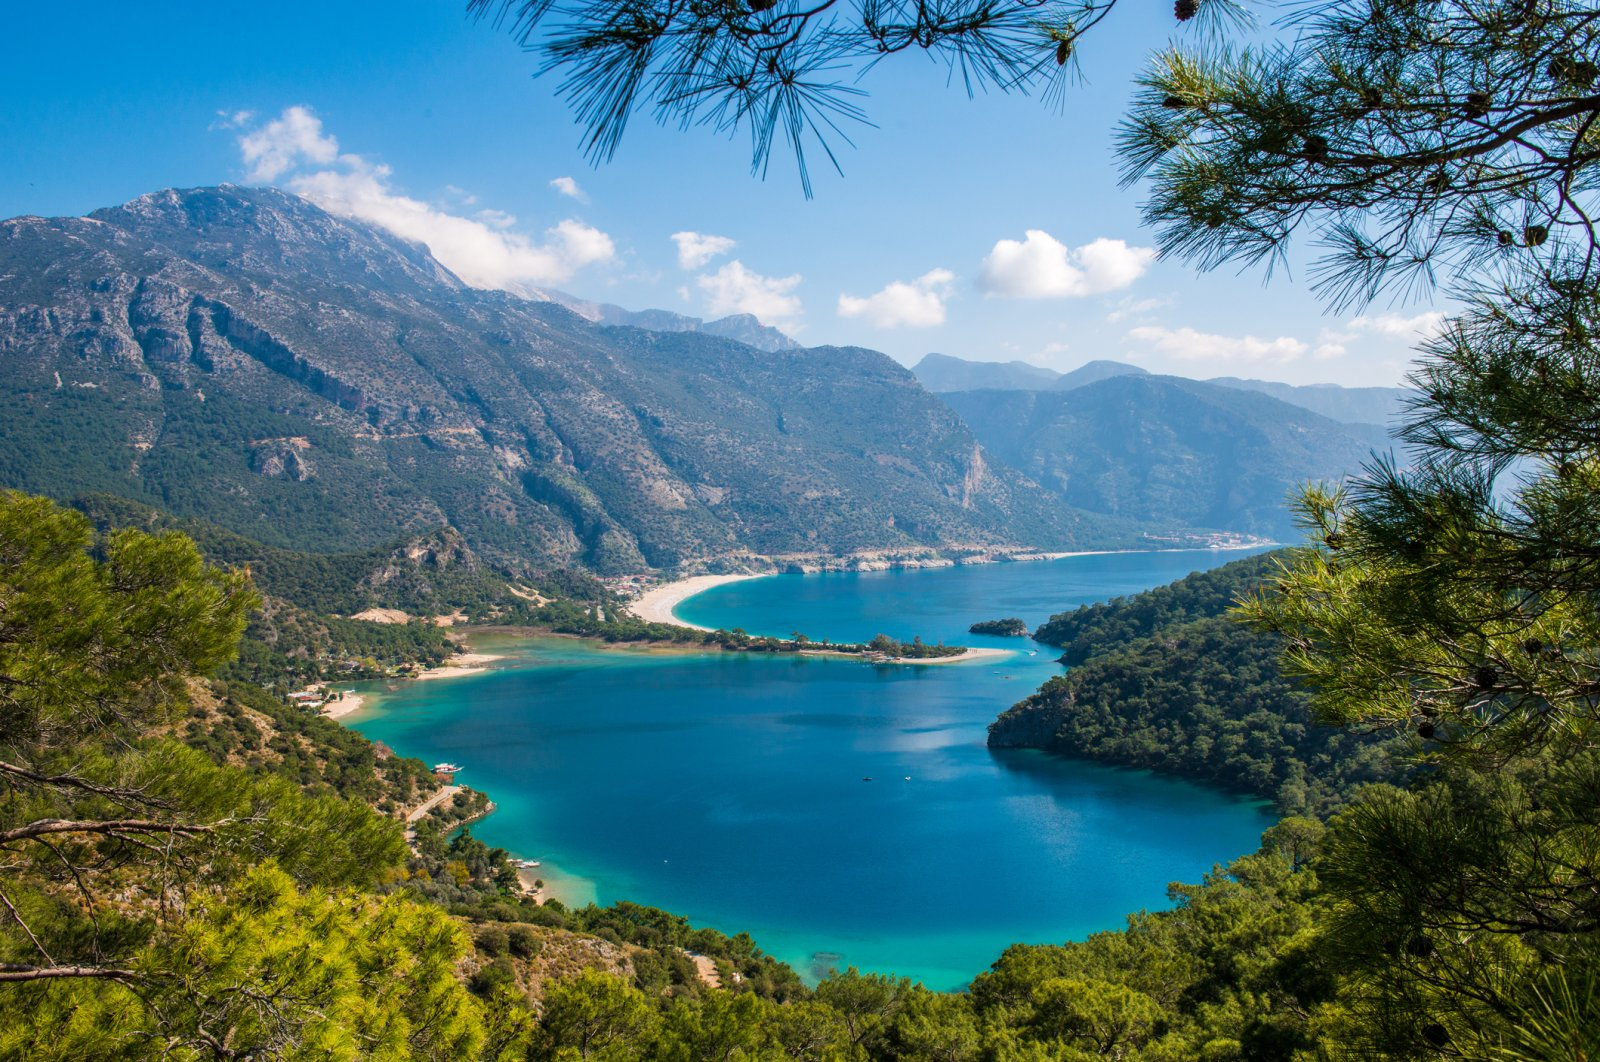 With its mountains, seas and rivers, Turkey has an activity for every kind of adventurer. (iStock Photo)